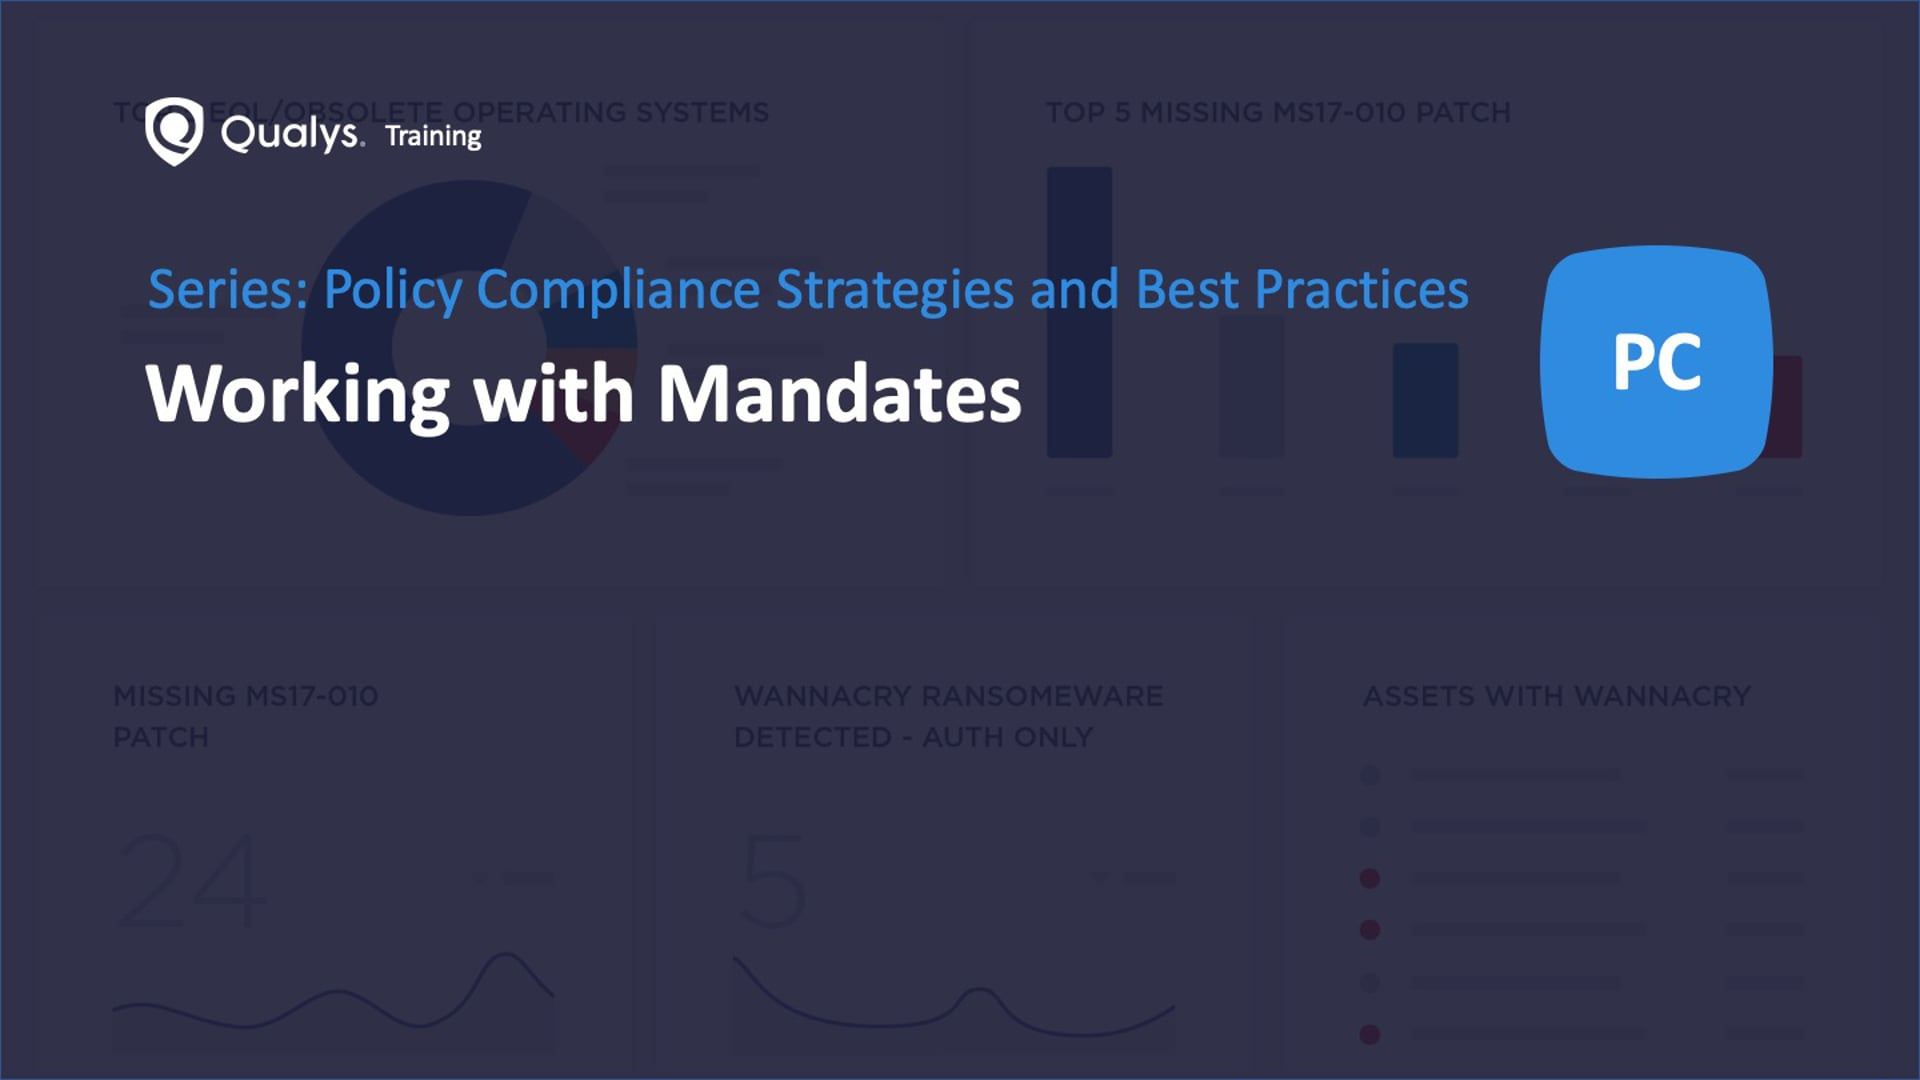 Working with Mandates